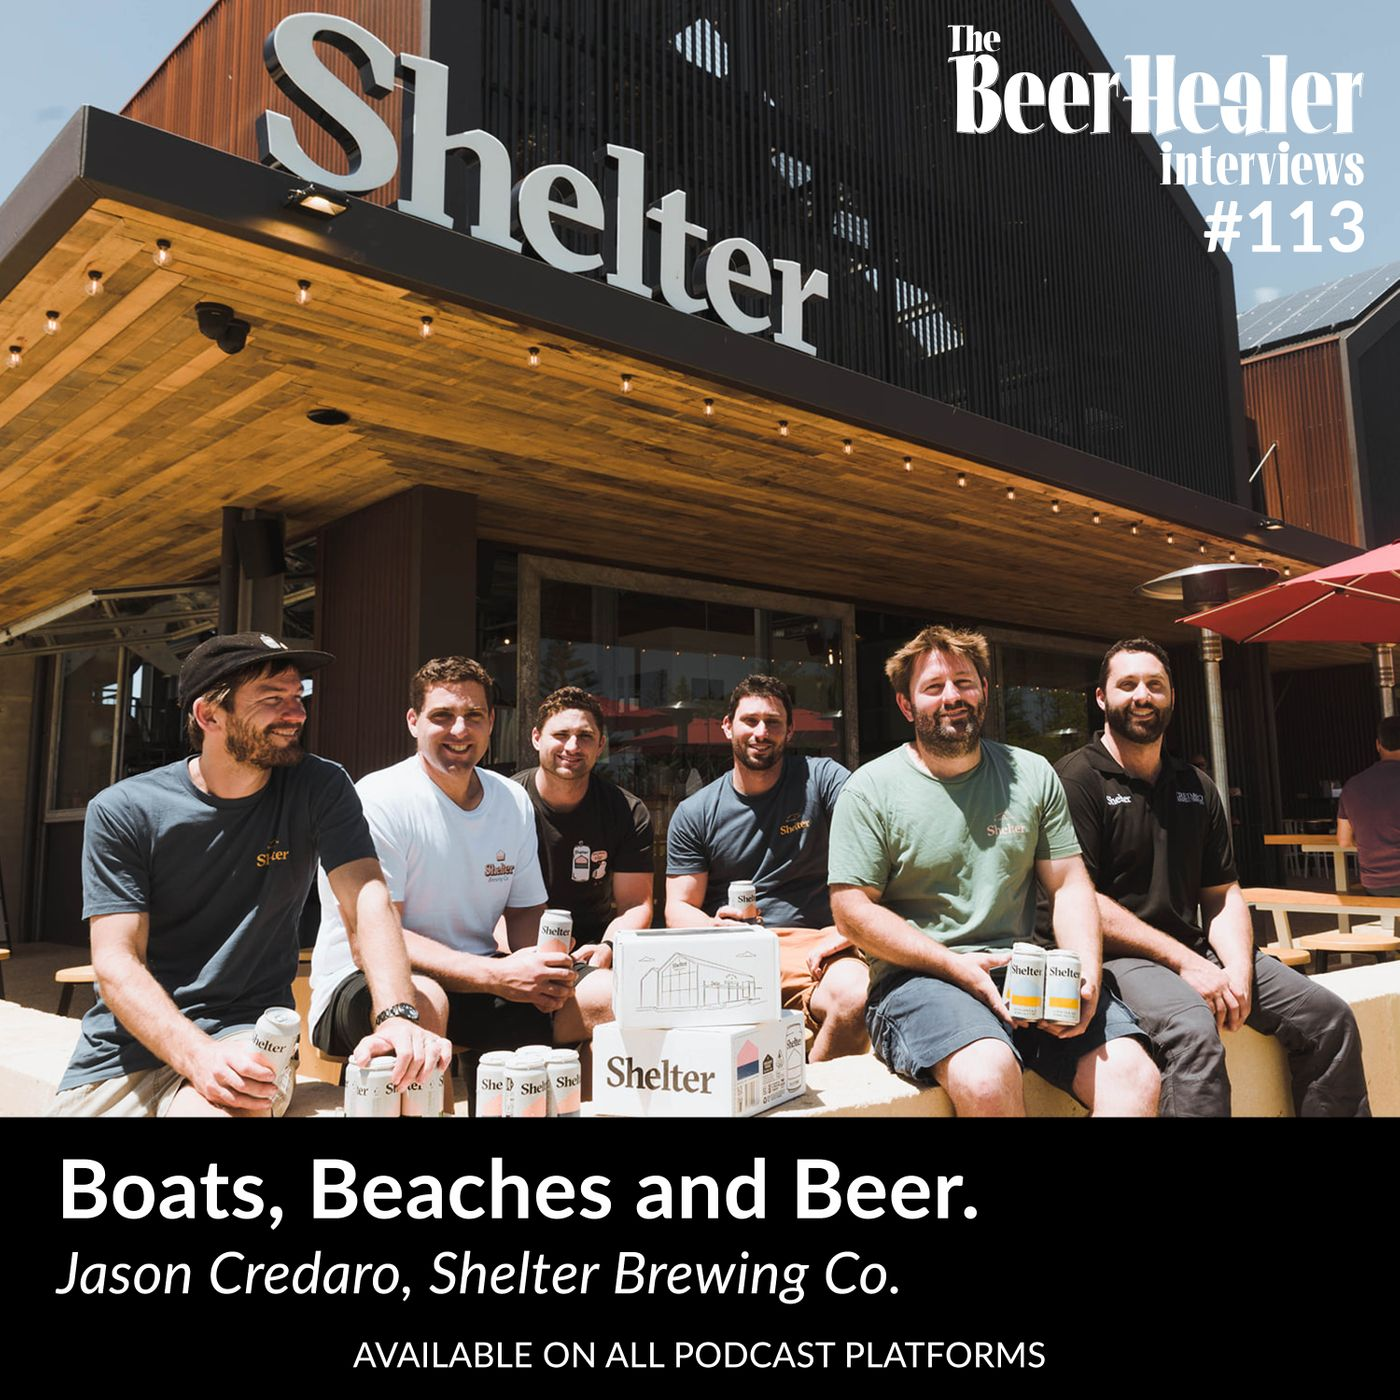 Ep. 113 - Boats, Beaches and Beer. With Shelter Brewing Co's Jason Credaro.